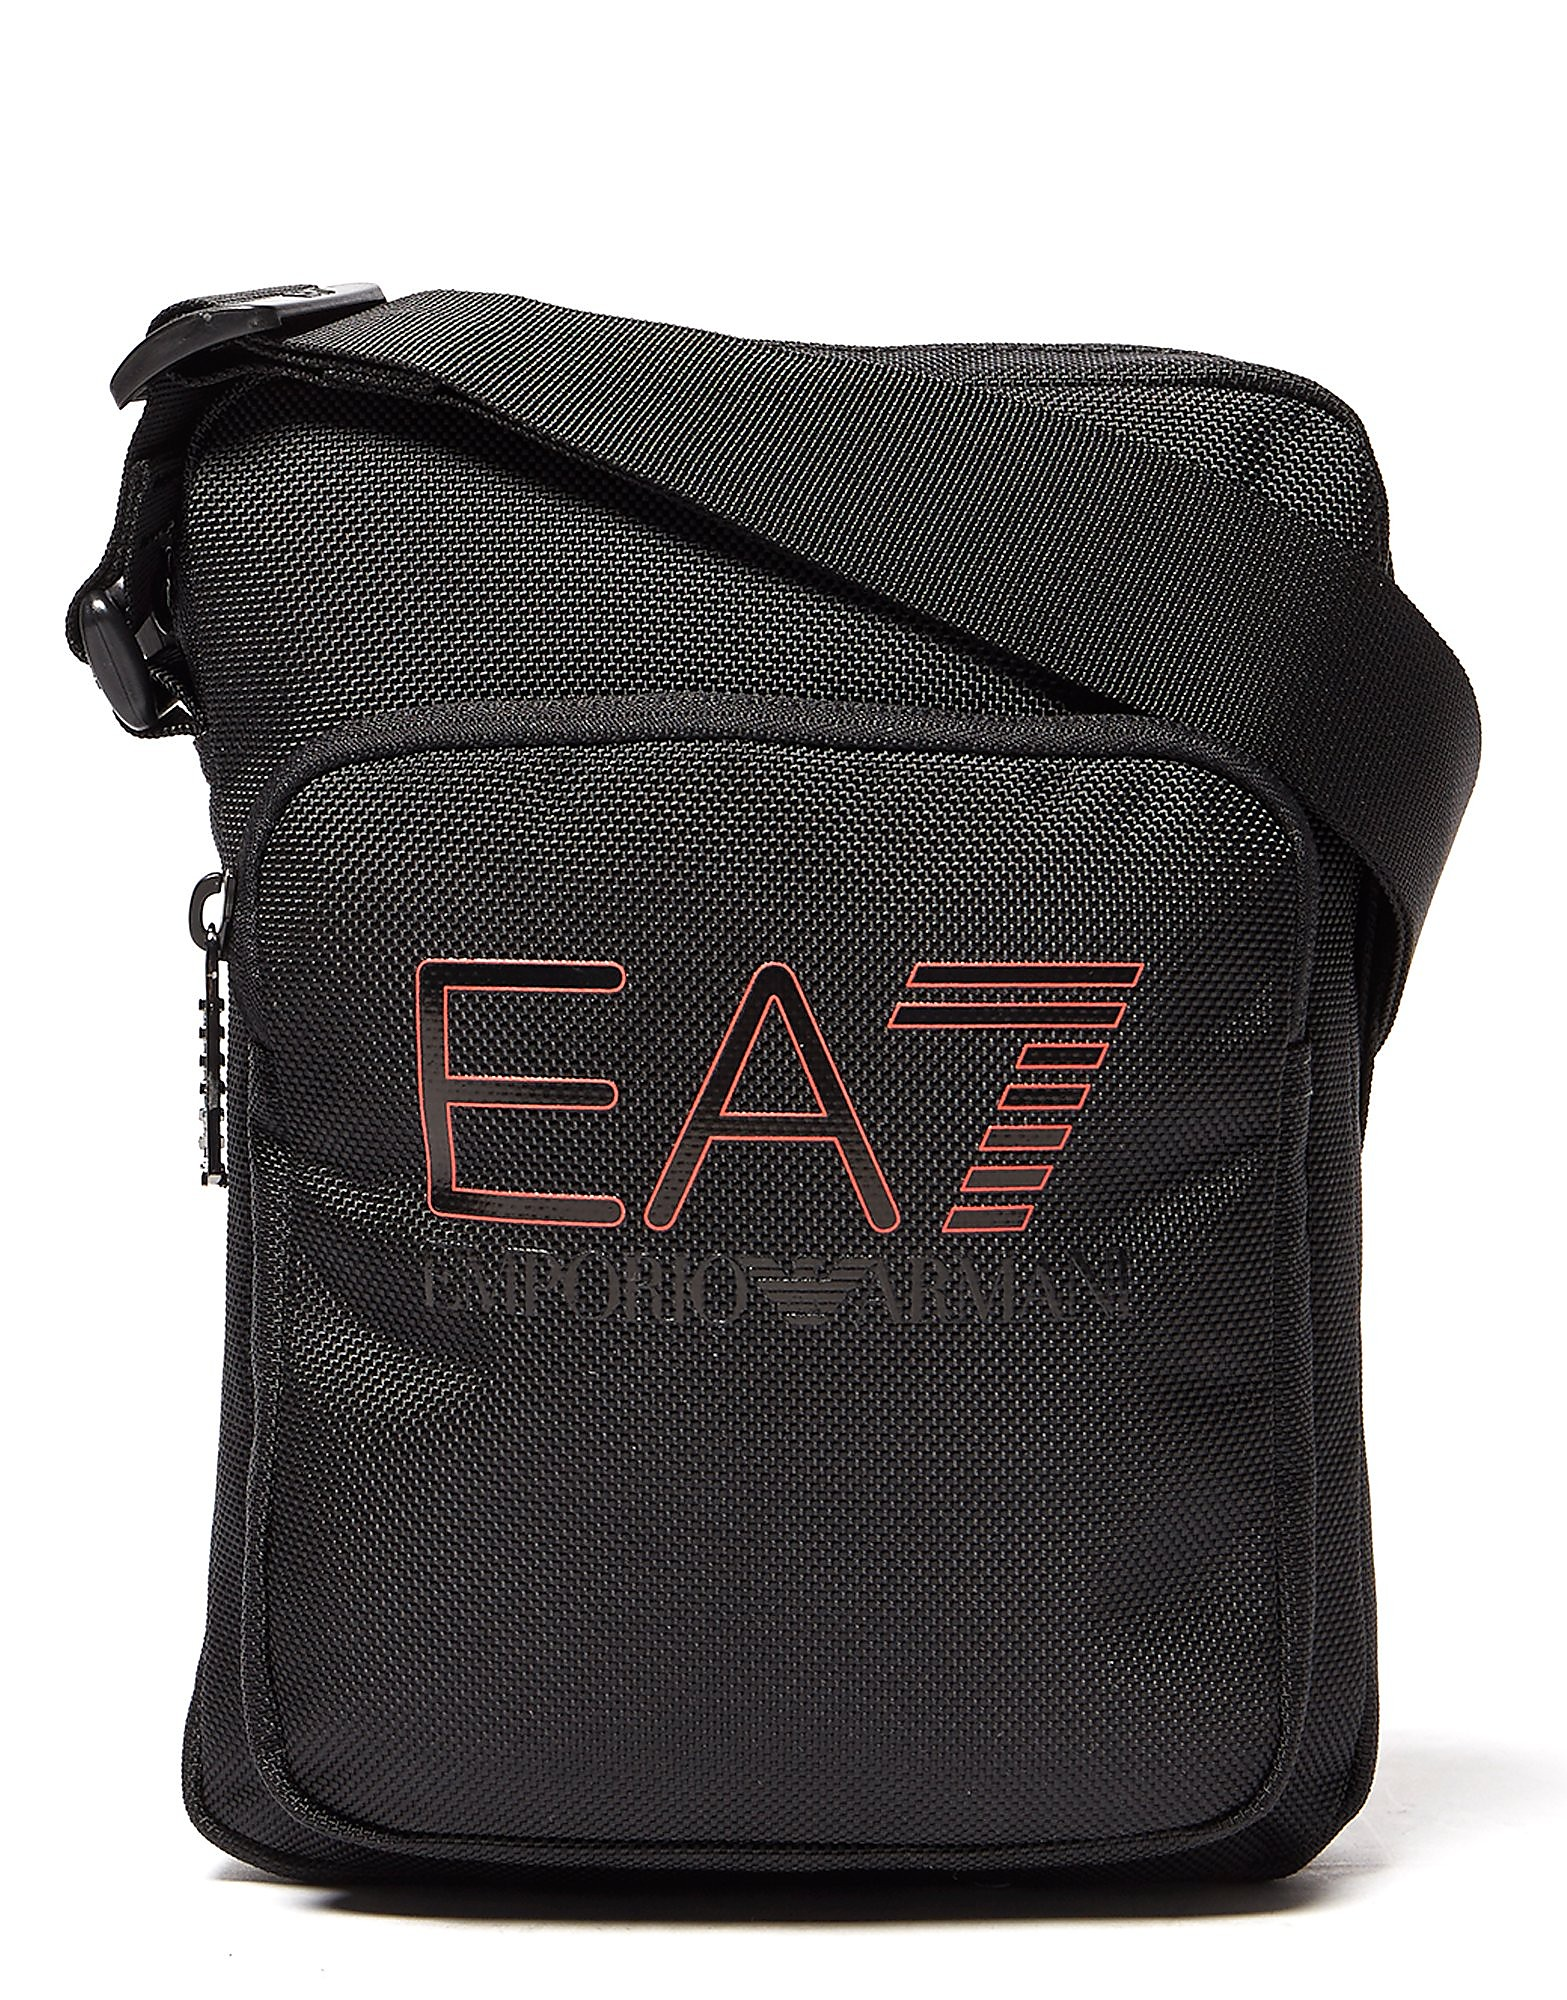 Emporio Armani EA7 Train Pouch Bag